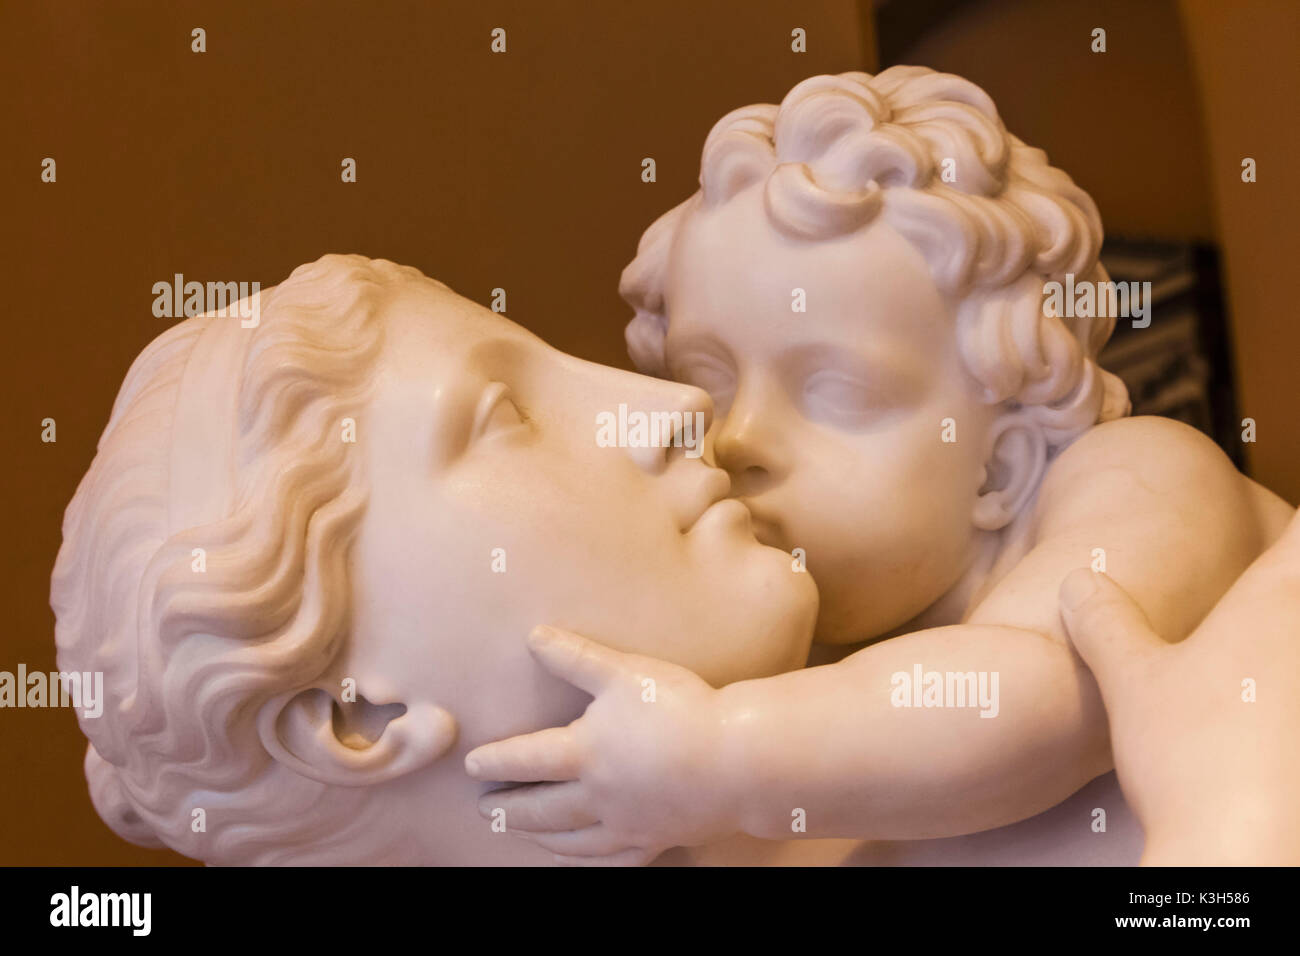 England, London, Kensington, Victoria and Albert Museum aka V&A, The Sculpture Room, Marble Statue titled 'Maternal Affection' by Edward Hodges Baily dated 1837 - Stock Image